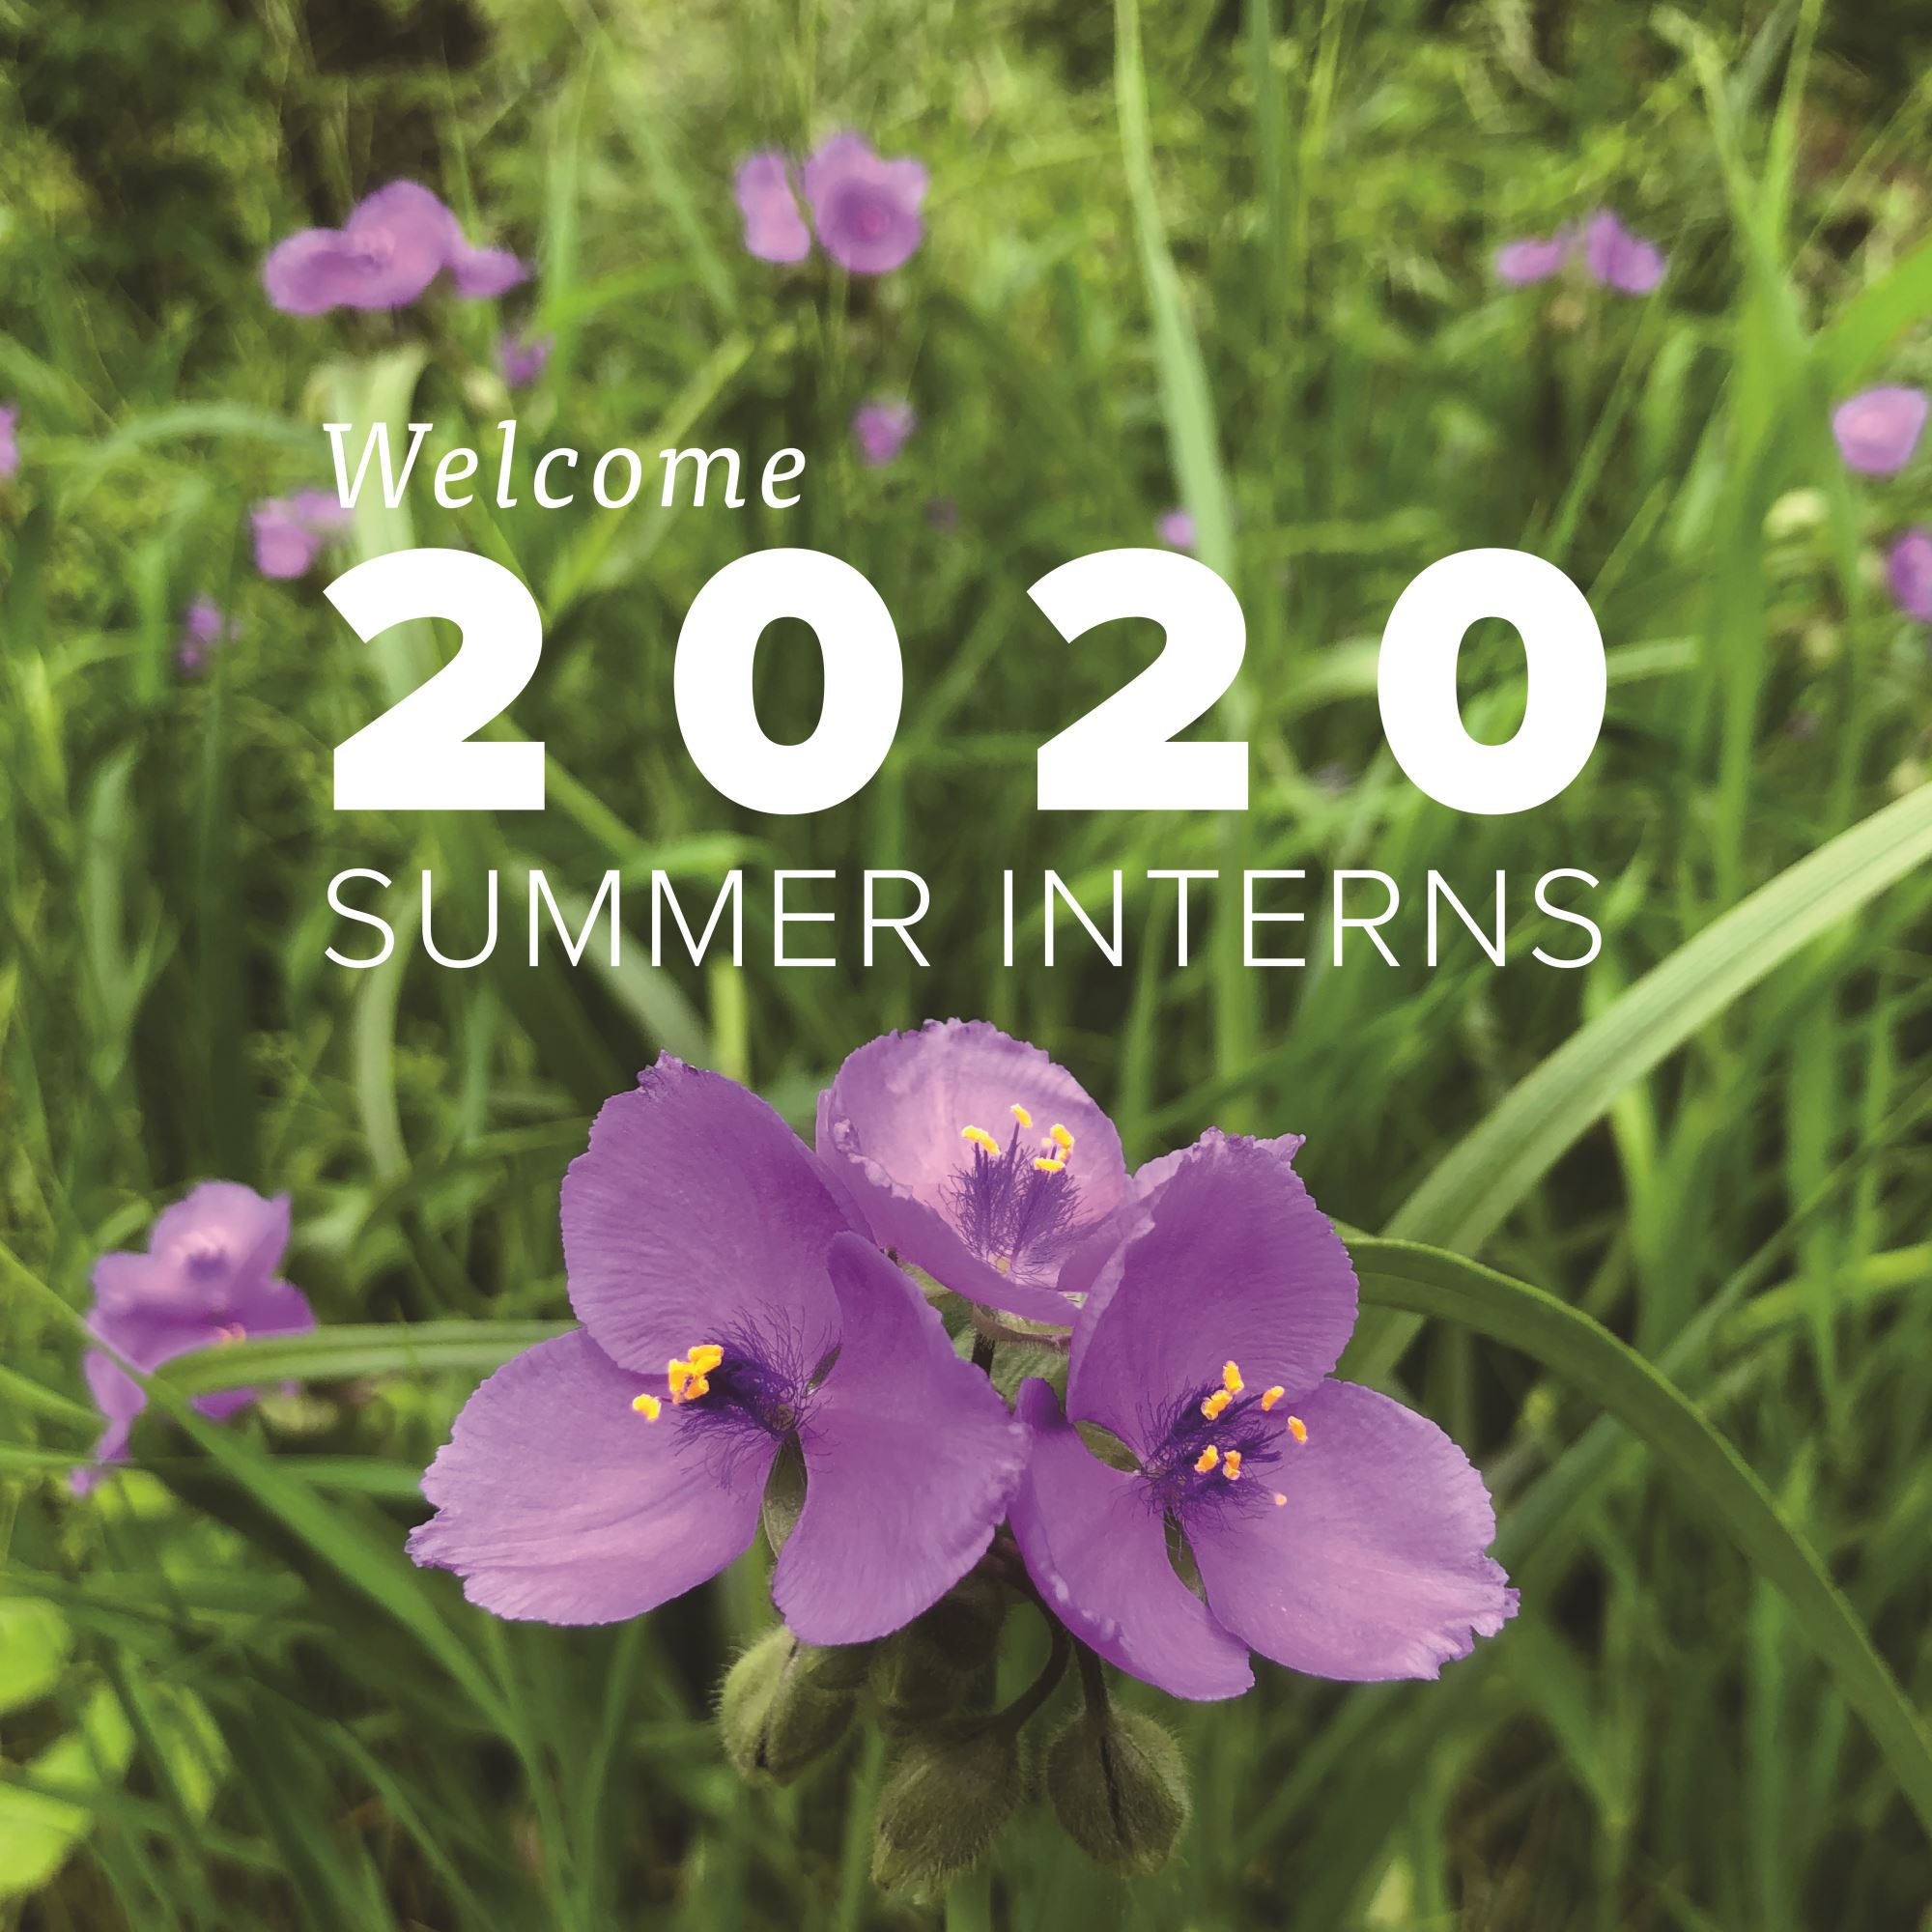 Meet INHF's 2020 Summer Interns